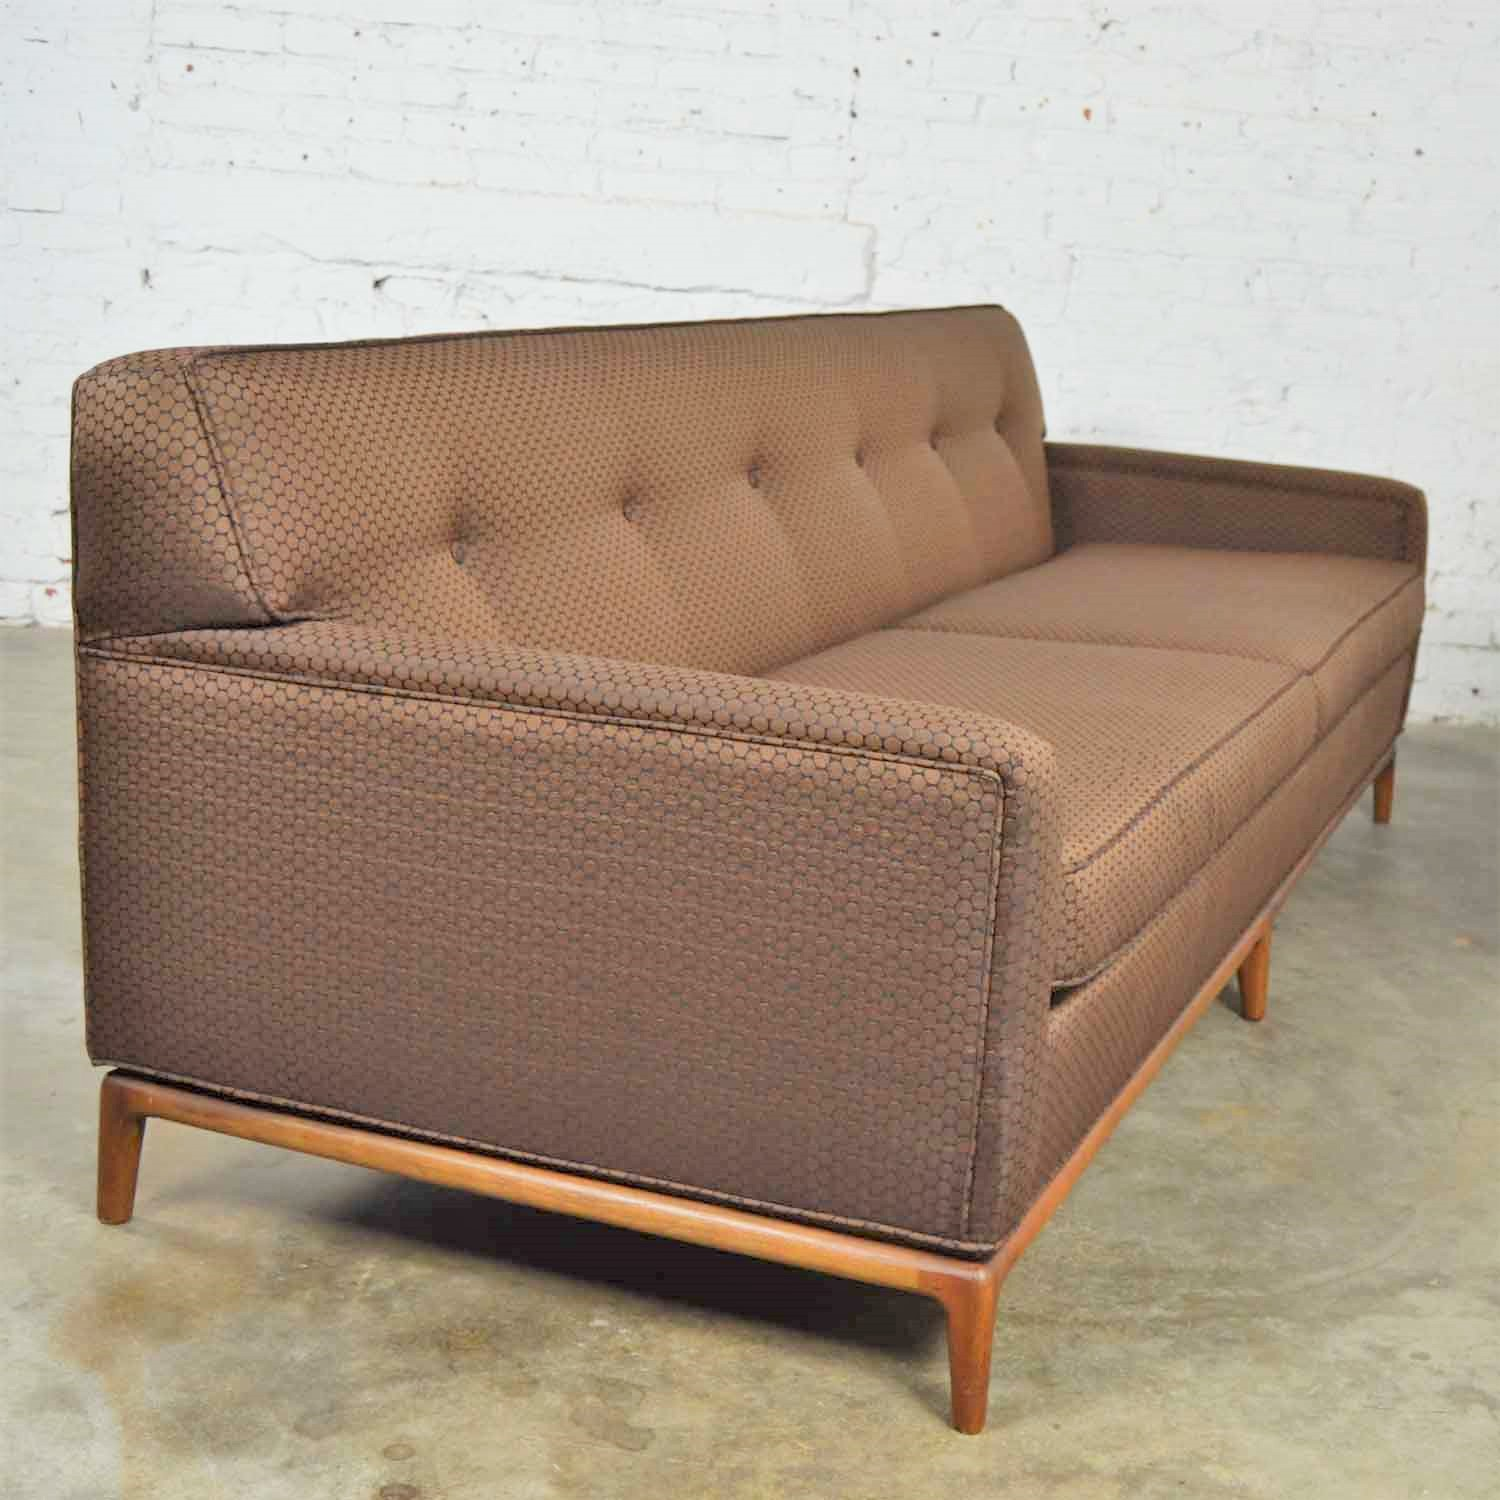 Swell Mid Century Modern Tufted Tight Back Tuxedo Sofa On Walnut Creativecarmelina Interior Chair Design Creativecarmelinacom